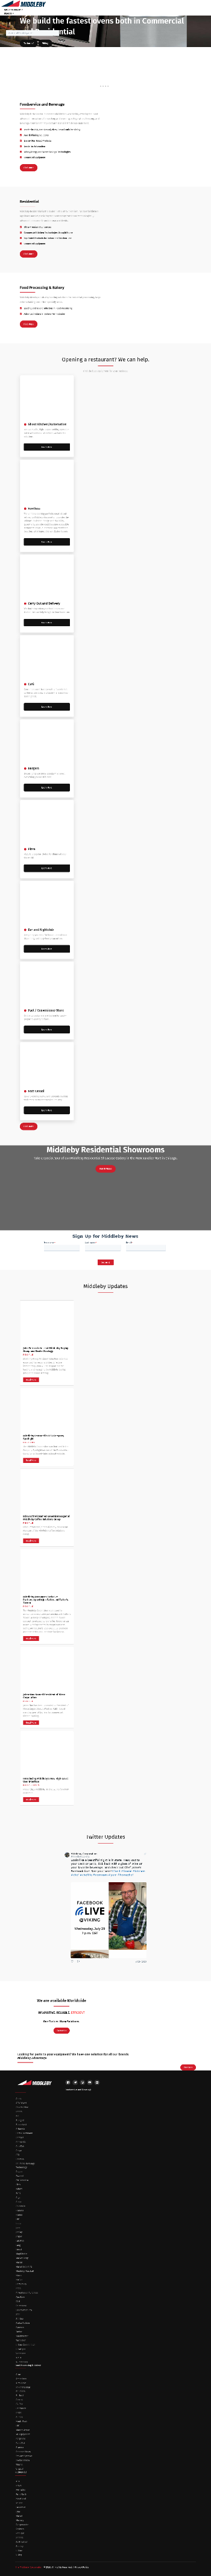 The Middleby Corporation Website Screenshot